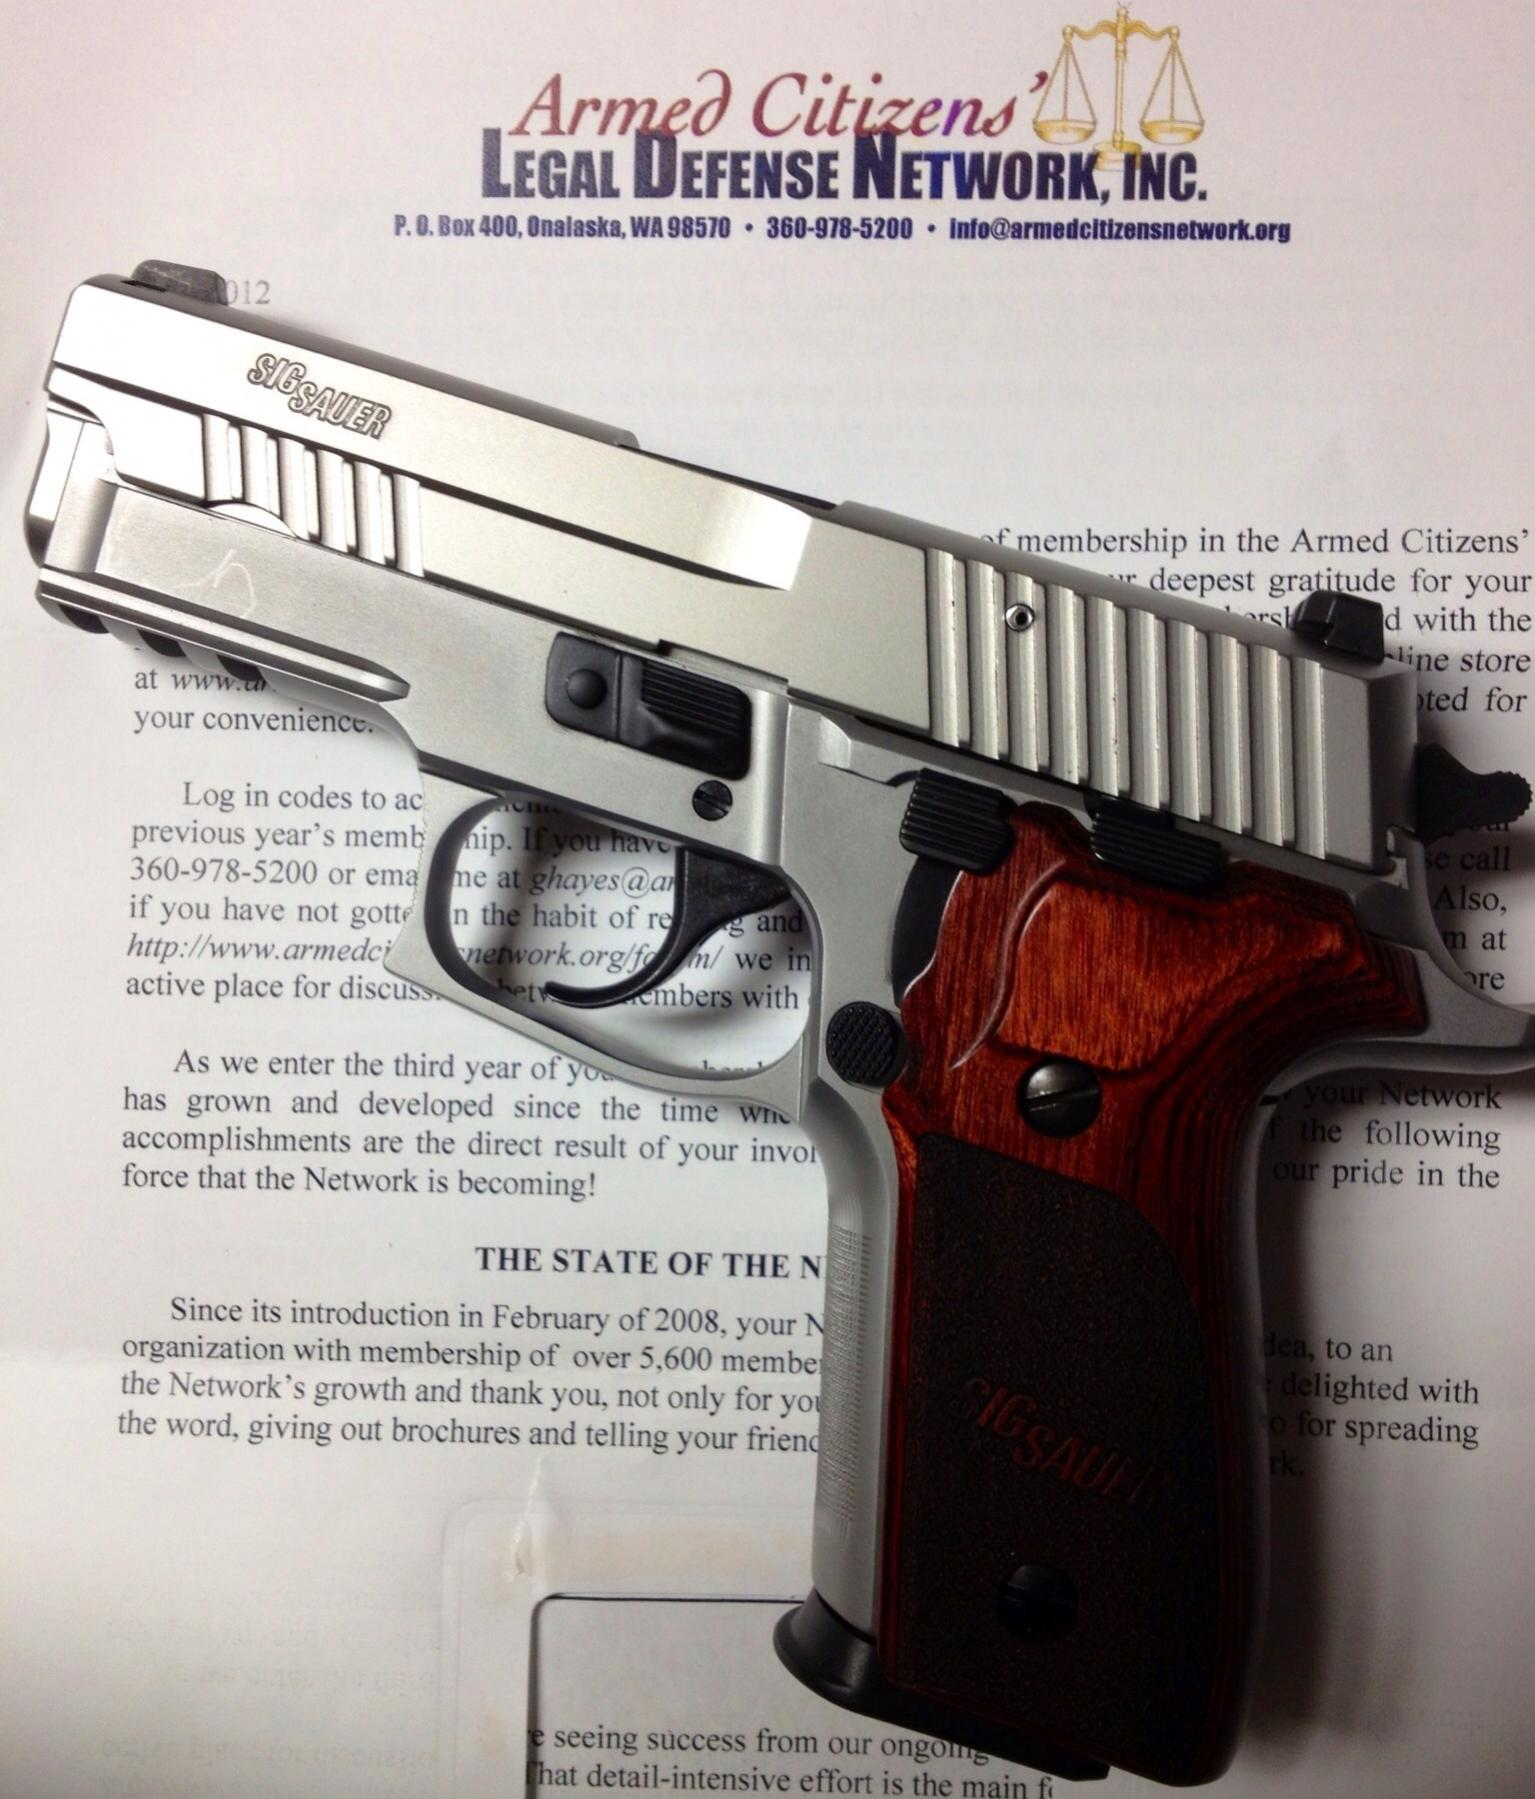 Thoughts on carrying the Sig p229 Elite Dark as a CCW-image.jpg